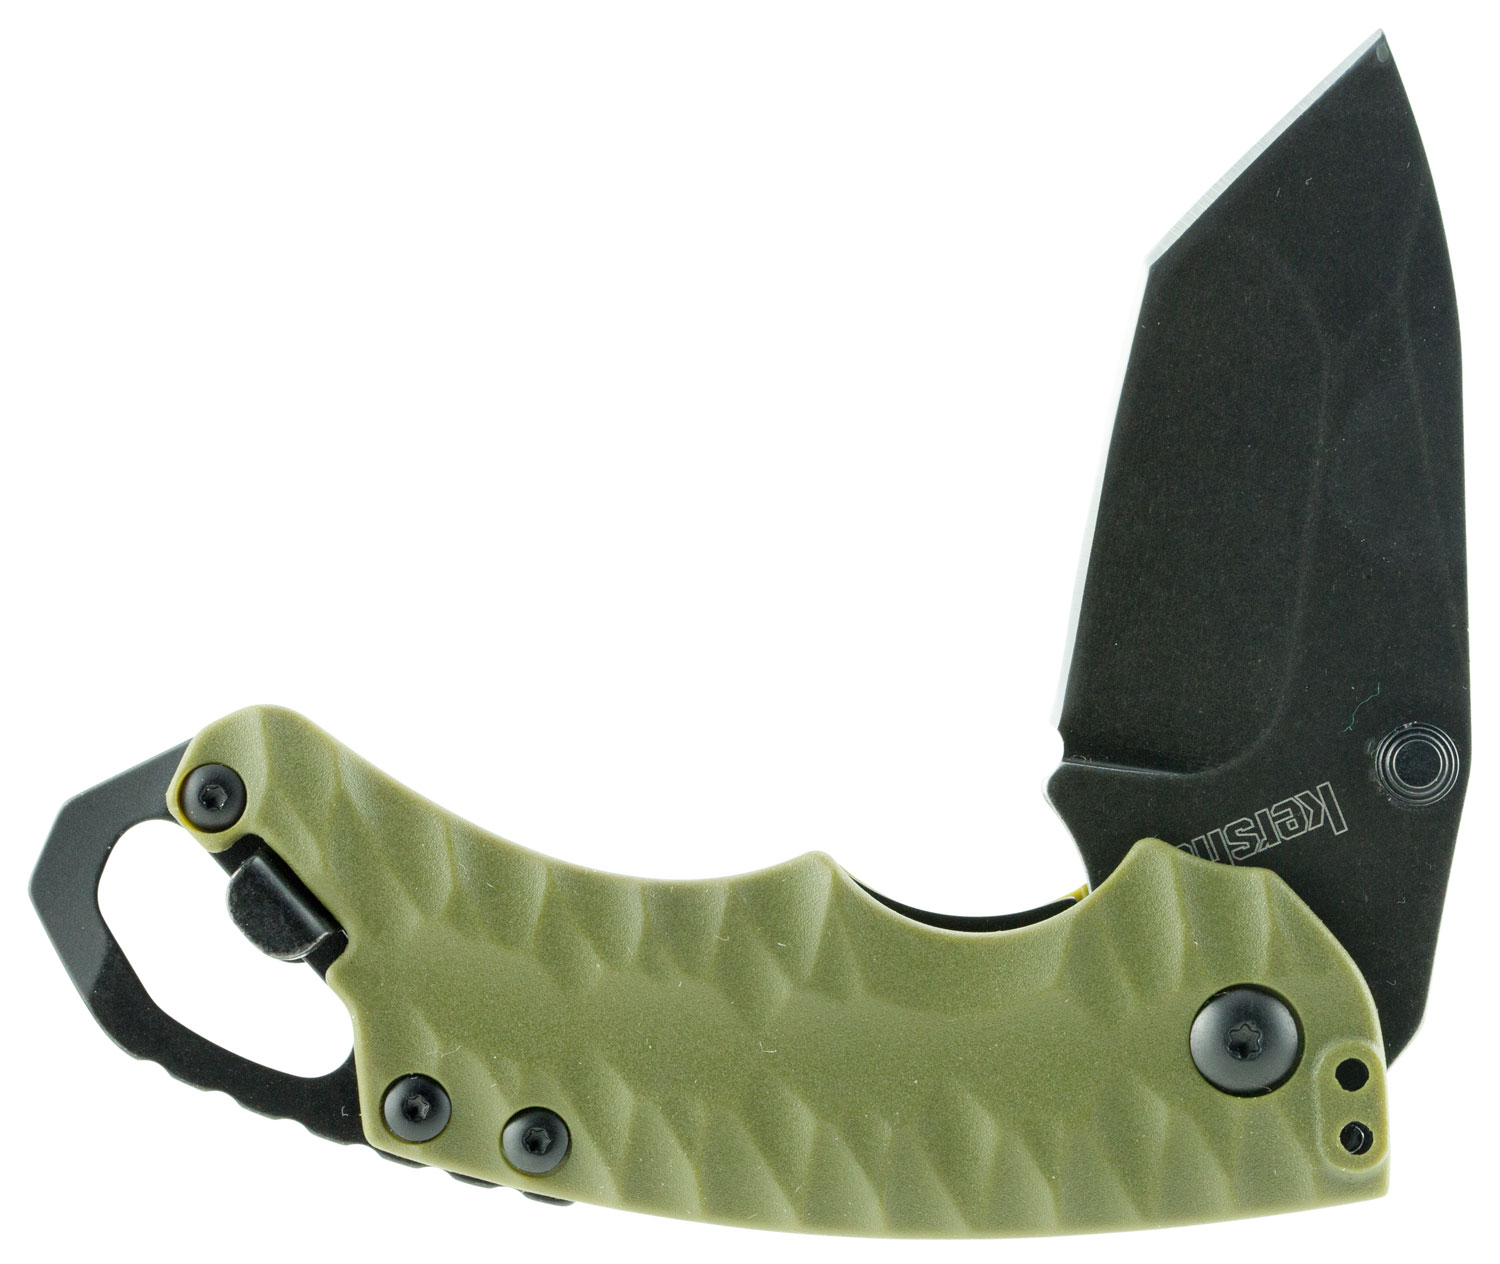 Kershaw Shuffle II Folder 2.375 in Blackwash Plain Olive GFN